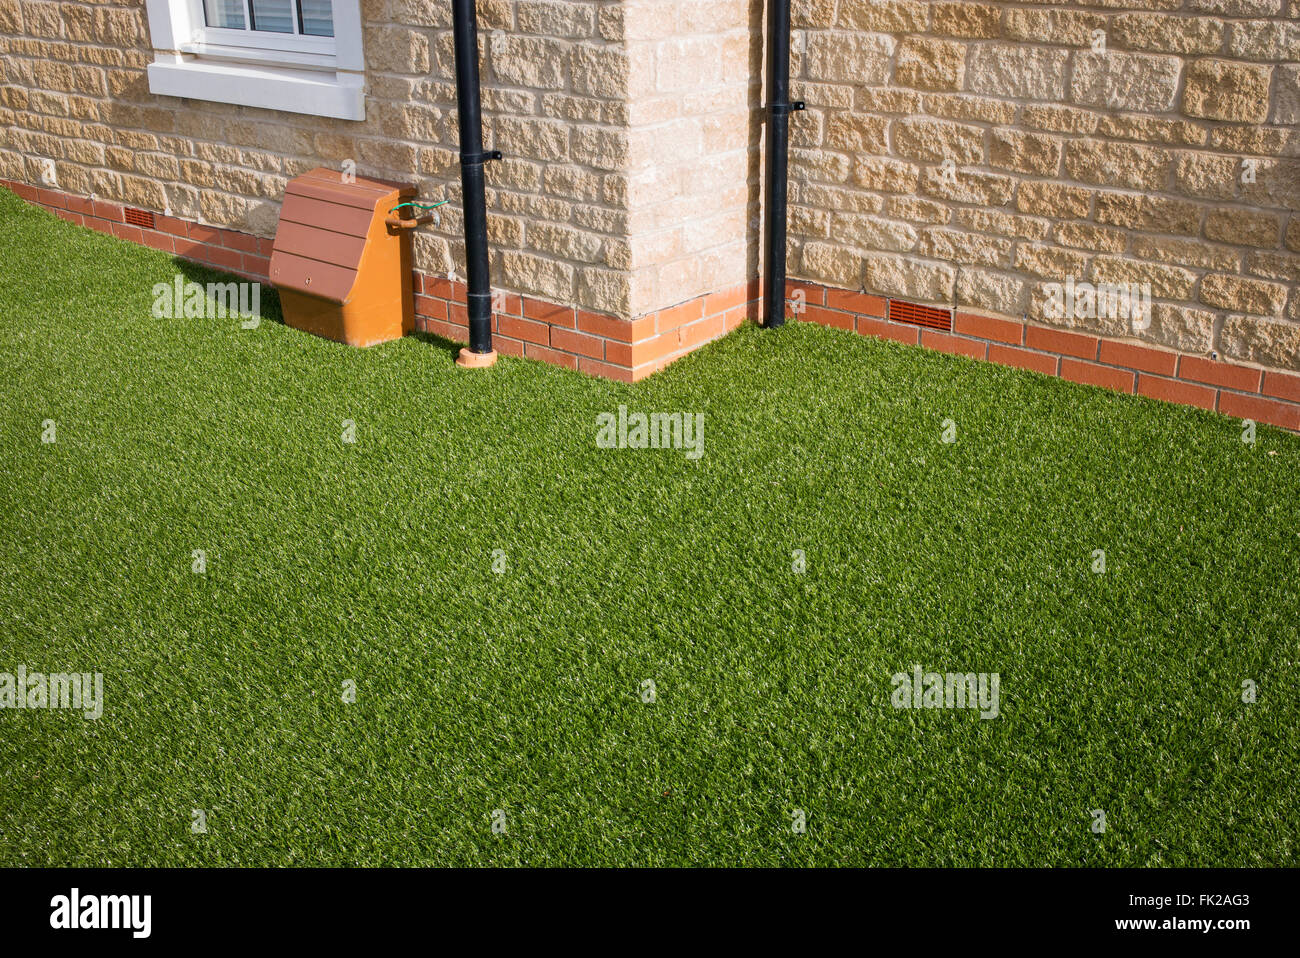 Artificial grass / astro turf on a new build housing estate. Bicester, Oxfordshire, England - Stock Image